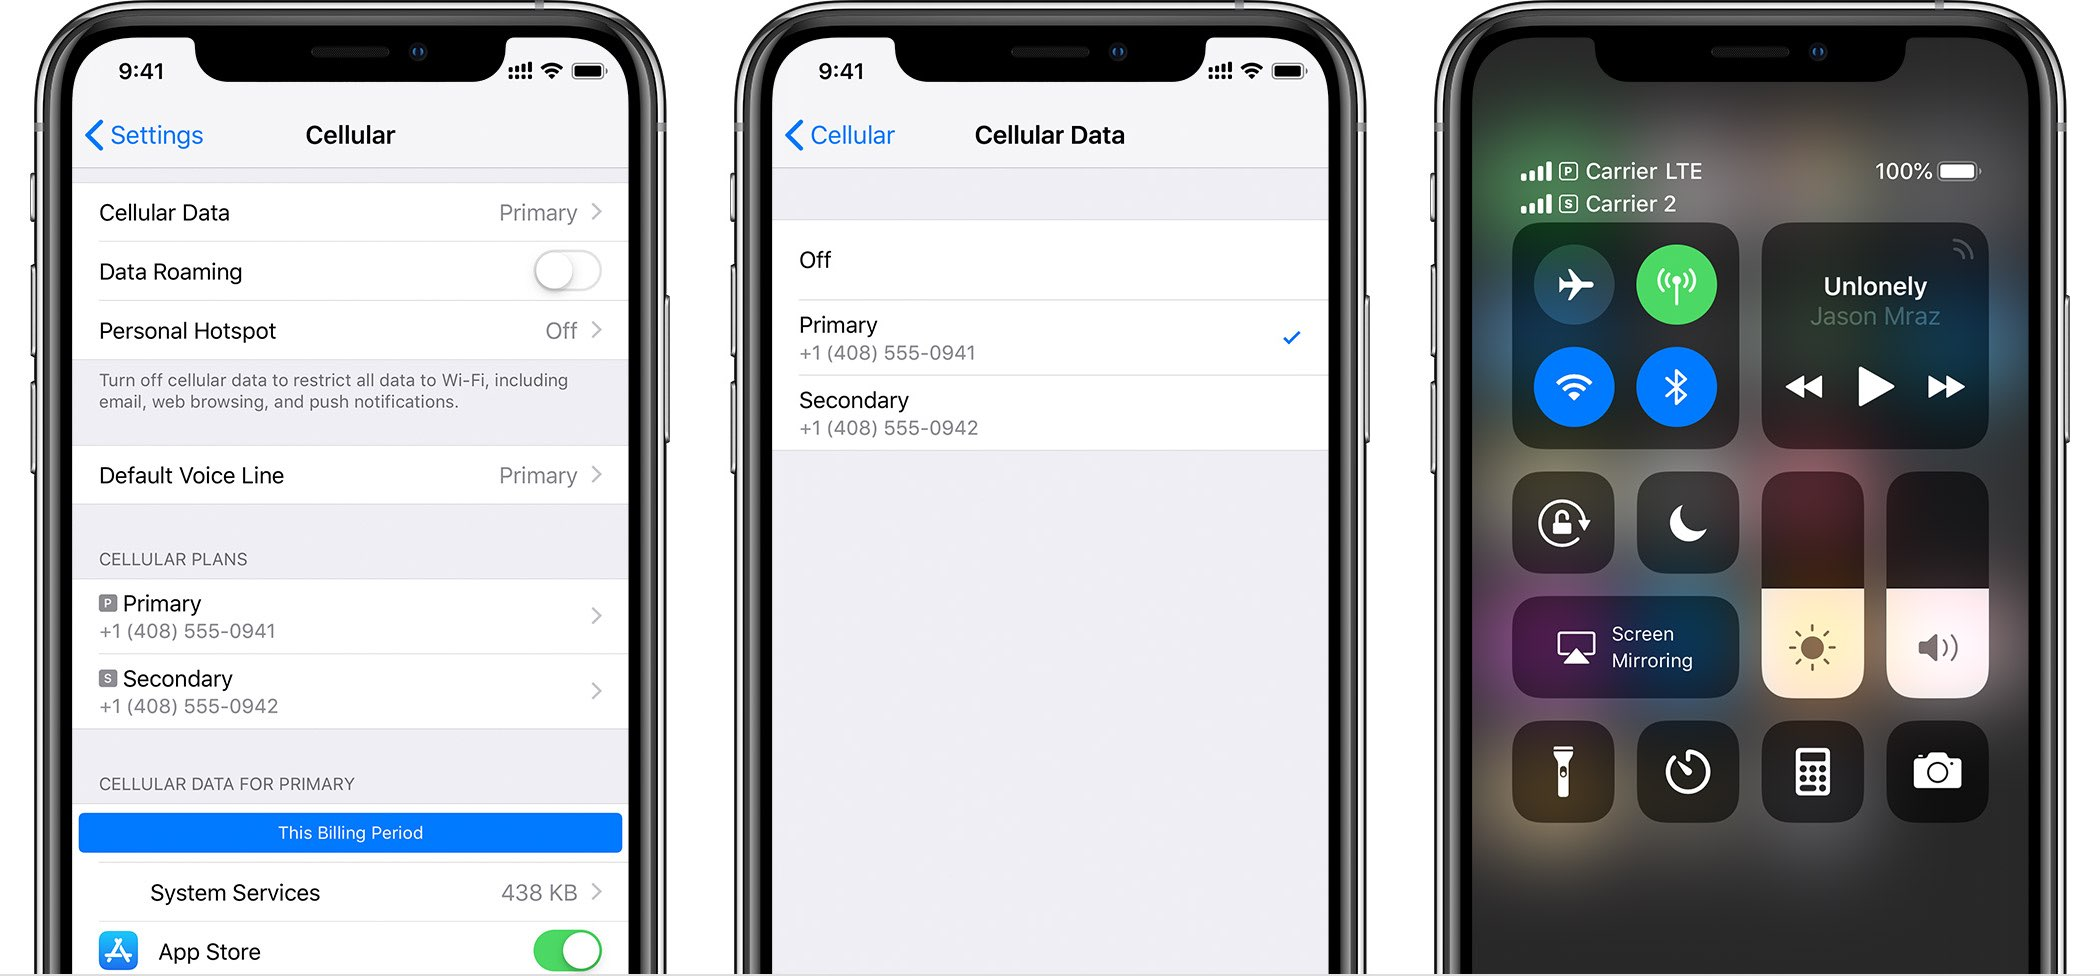 iPhone dual SIM support requires iOS 12.1